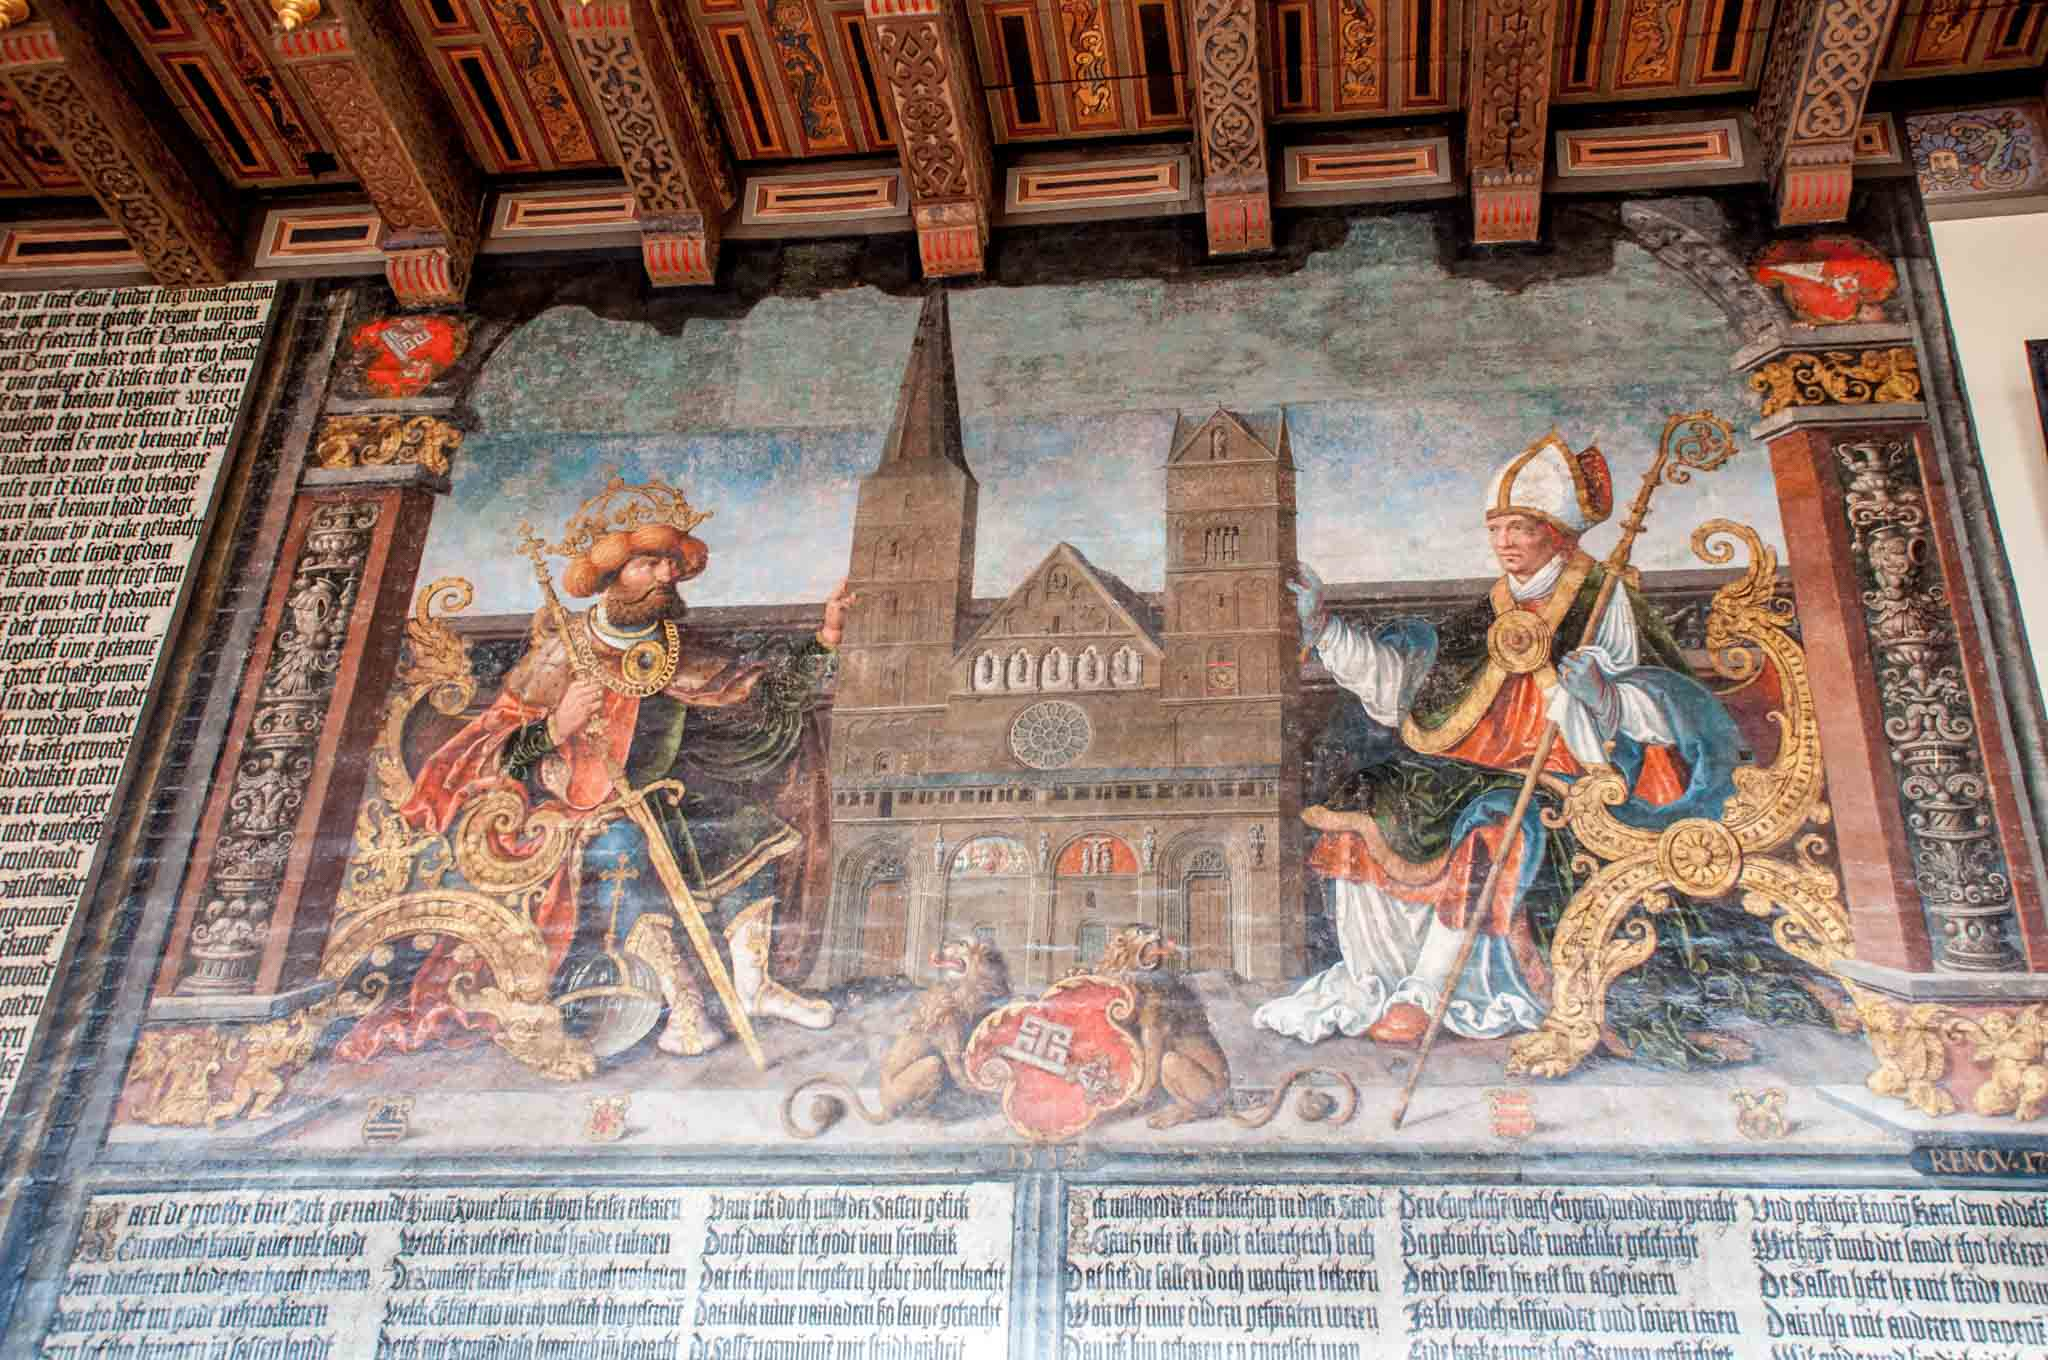 Painting of Charlemagne giving the first church to the city